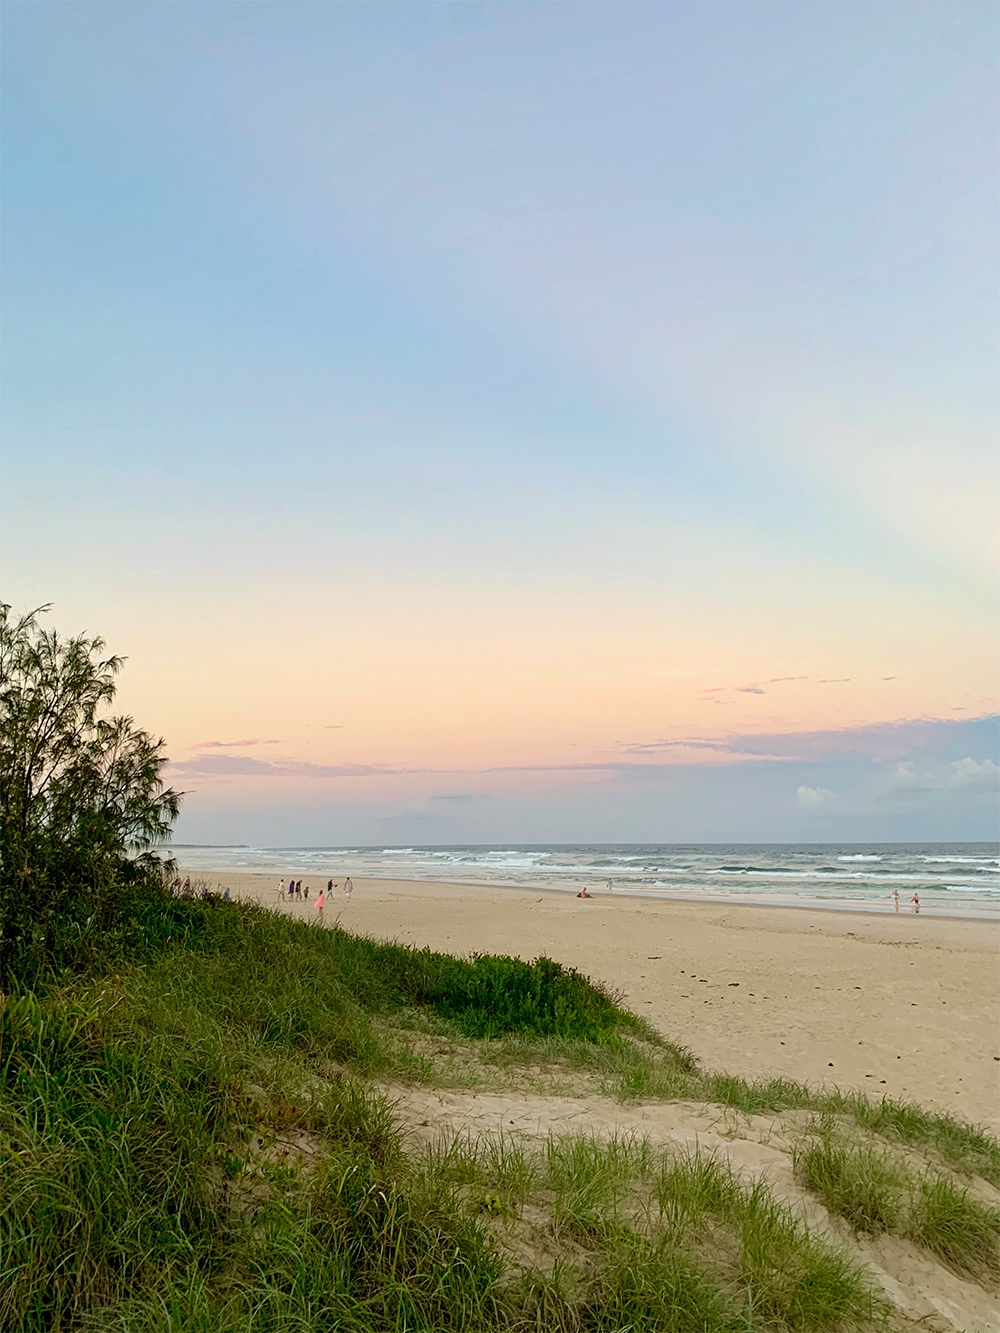 Groups walk along the sand and watch the dreamy summer sunset over the expansive beach